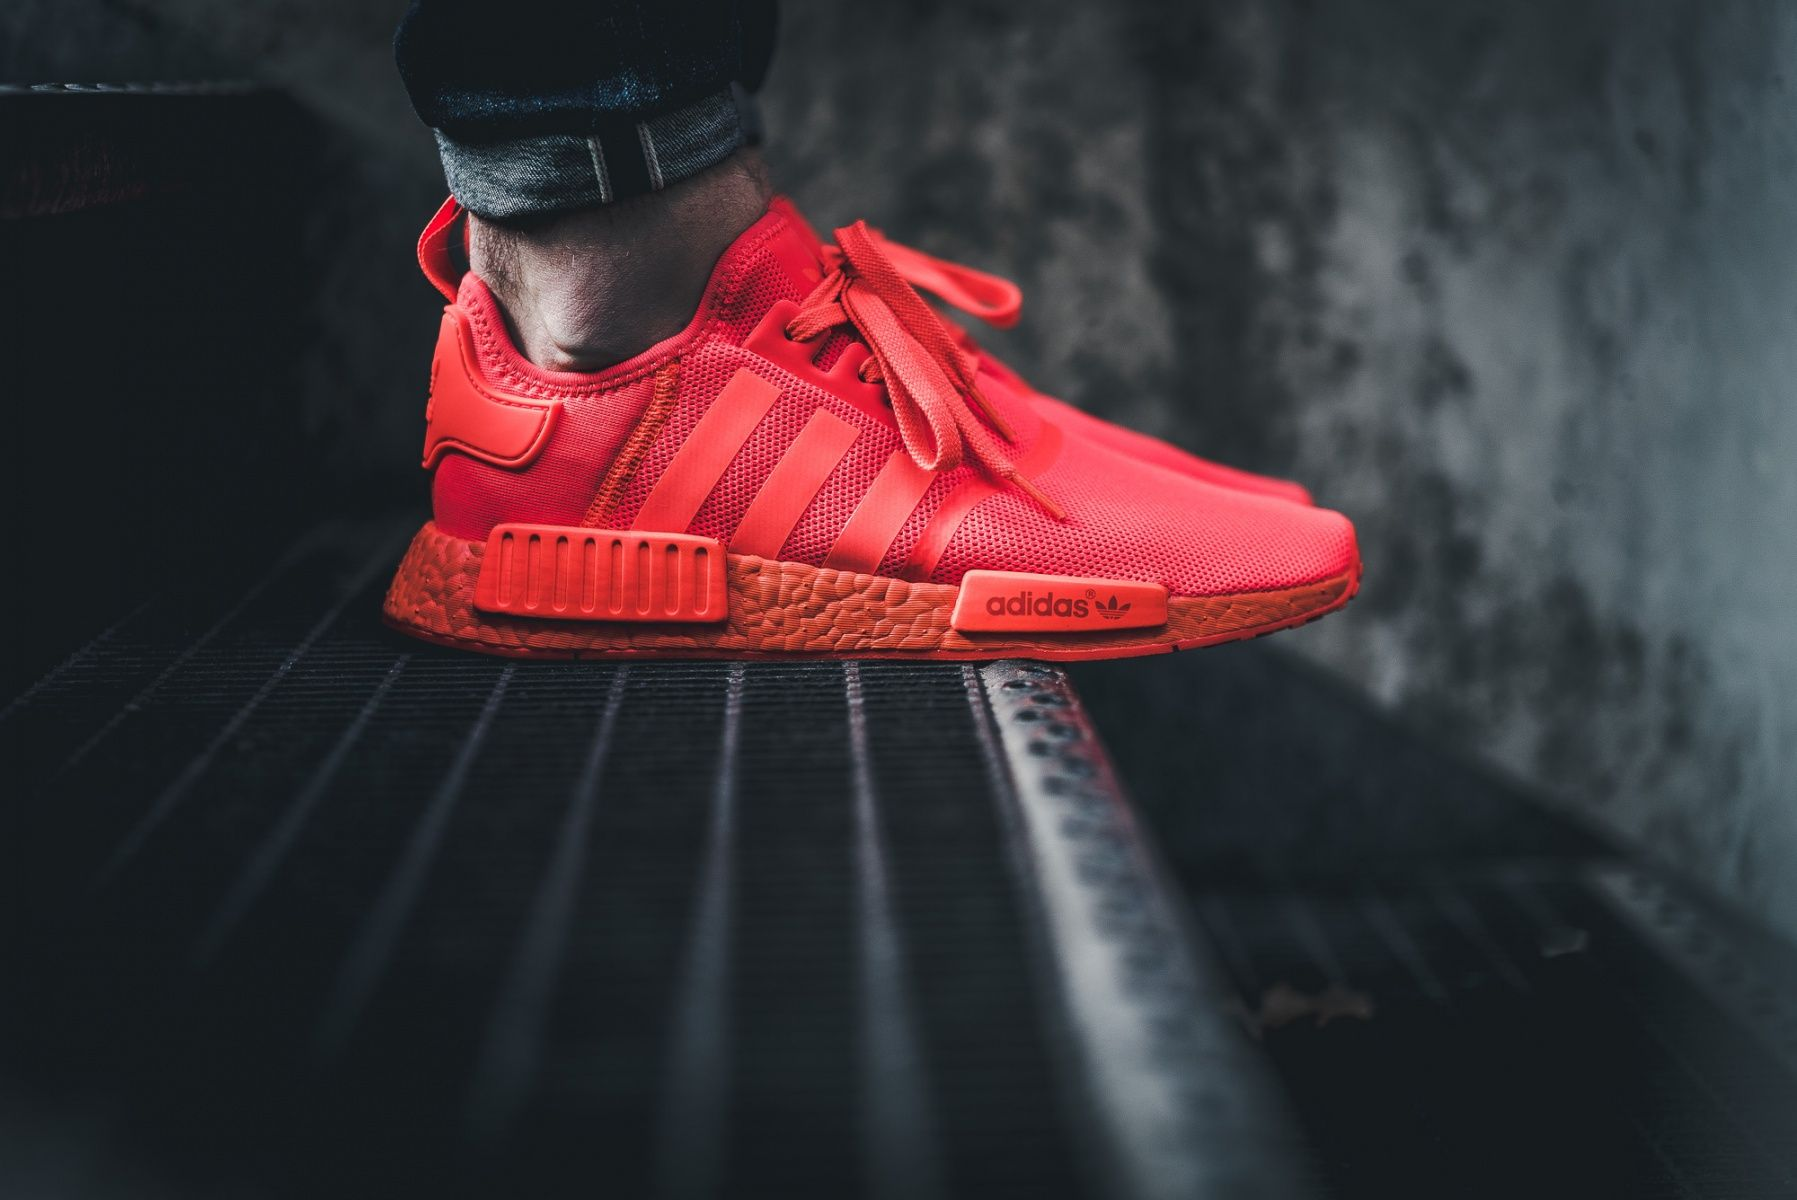 117bef4333bc5 adidas NMD R1 (S31507) Solar Red Pre Order and Release on 25 Feb  #solecollector #dailysole #kicksonfire #nicekicks #kicksoftoday  #kicks4sales #niketalk ...